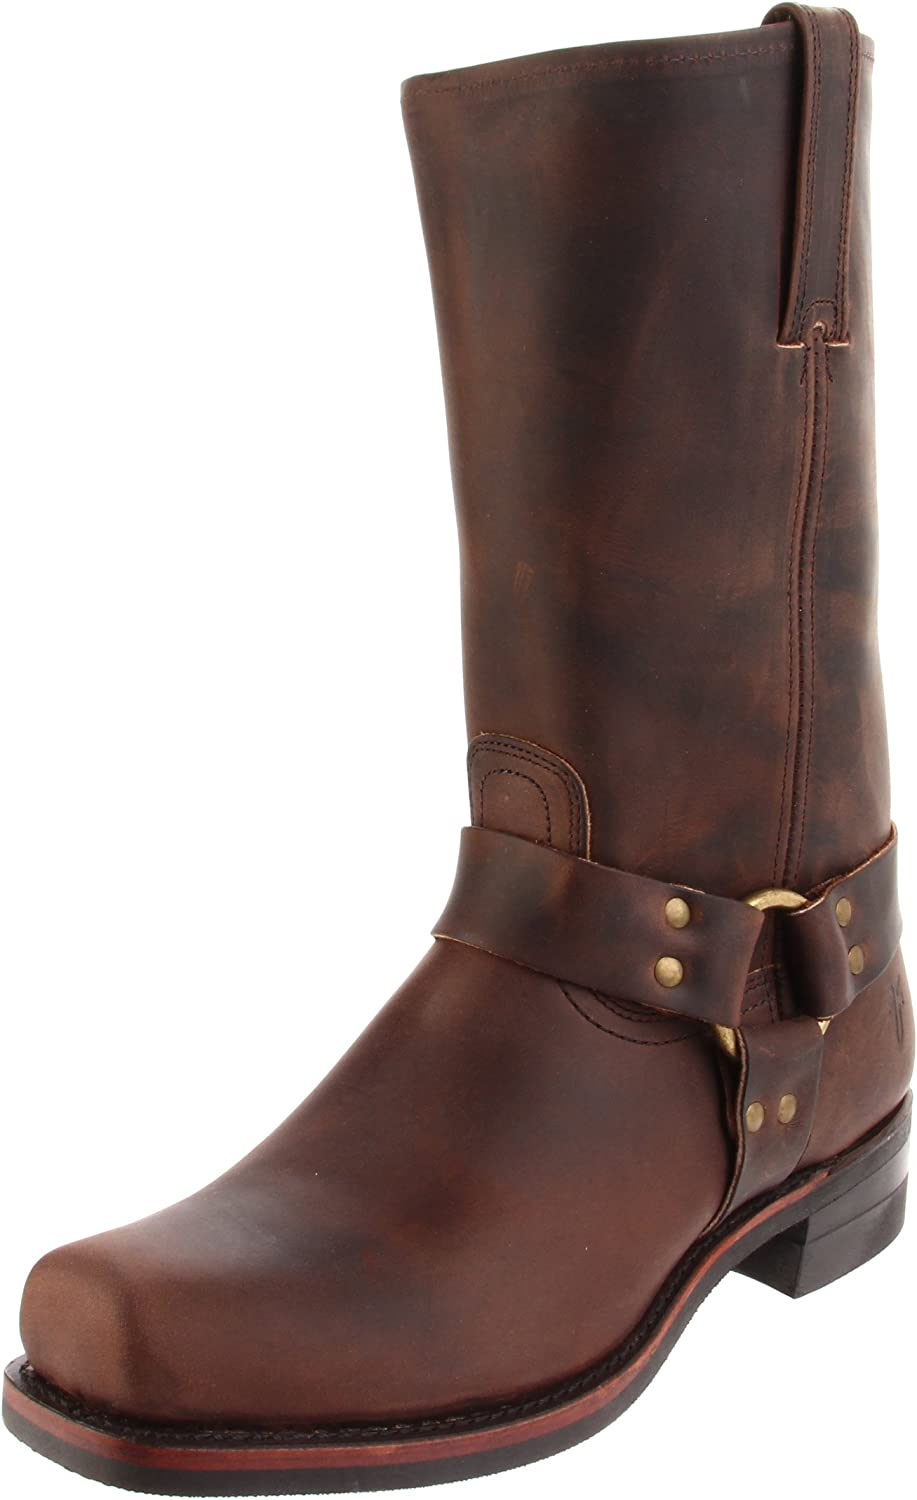 Frye Men's Harness 12R Boot Shoes